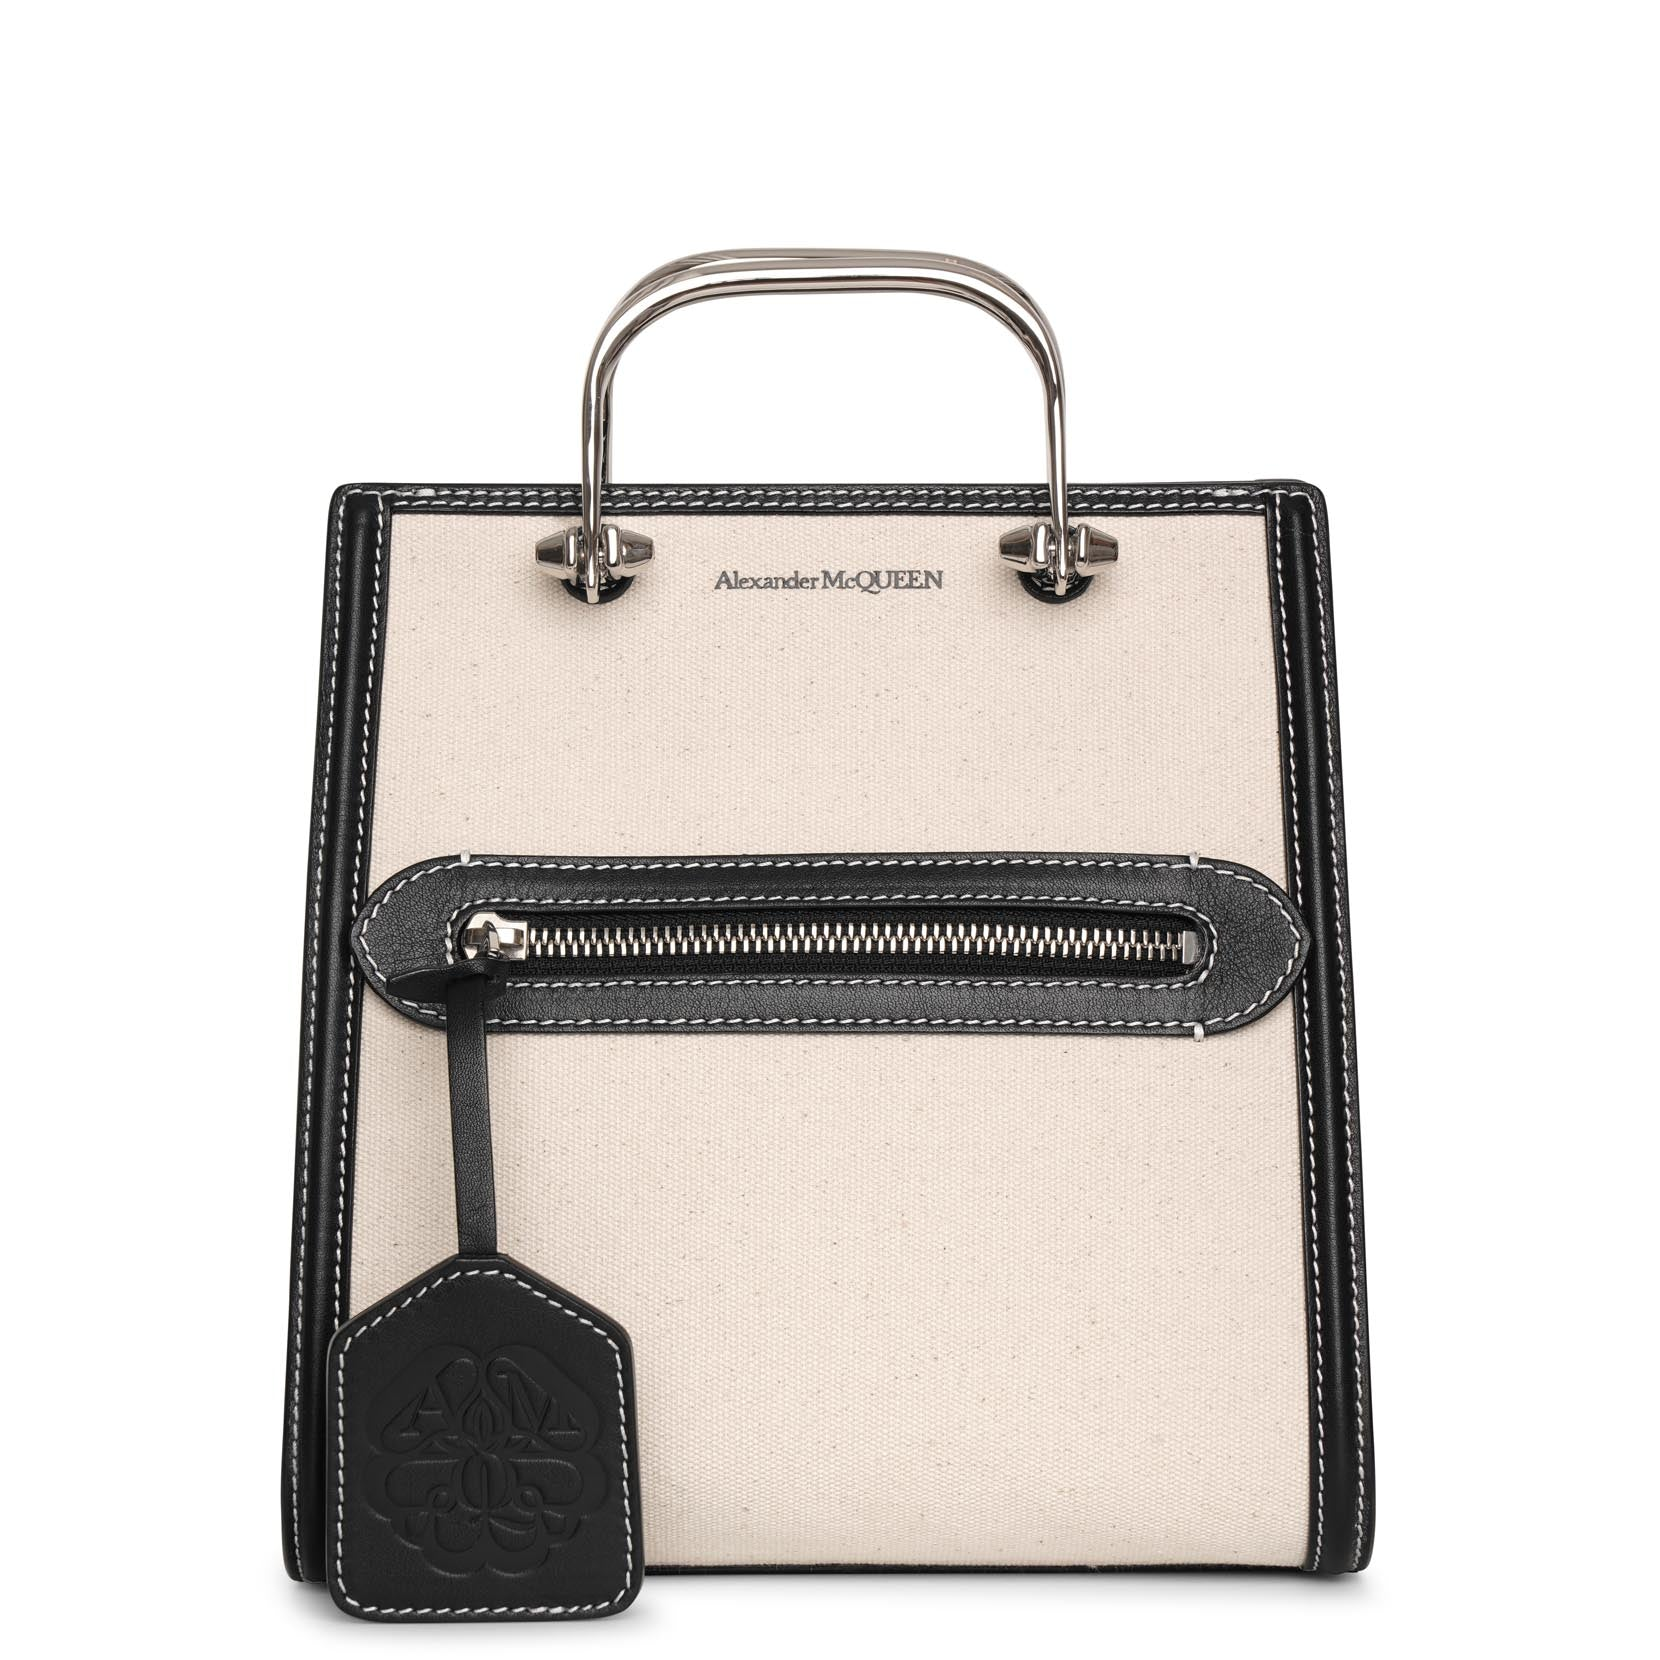 Alexander Mcqueen Leathers The Short Story canvas bag